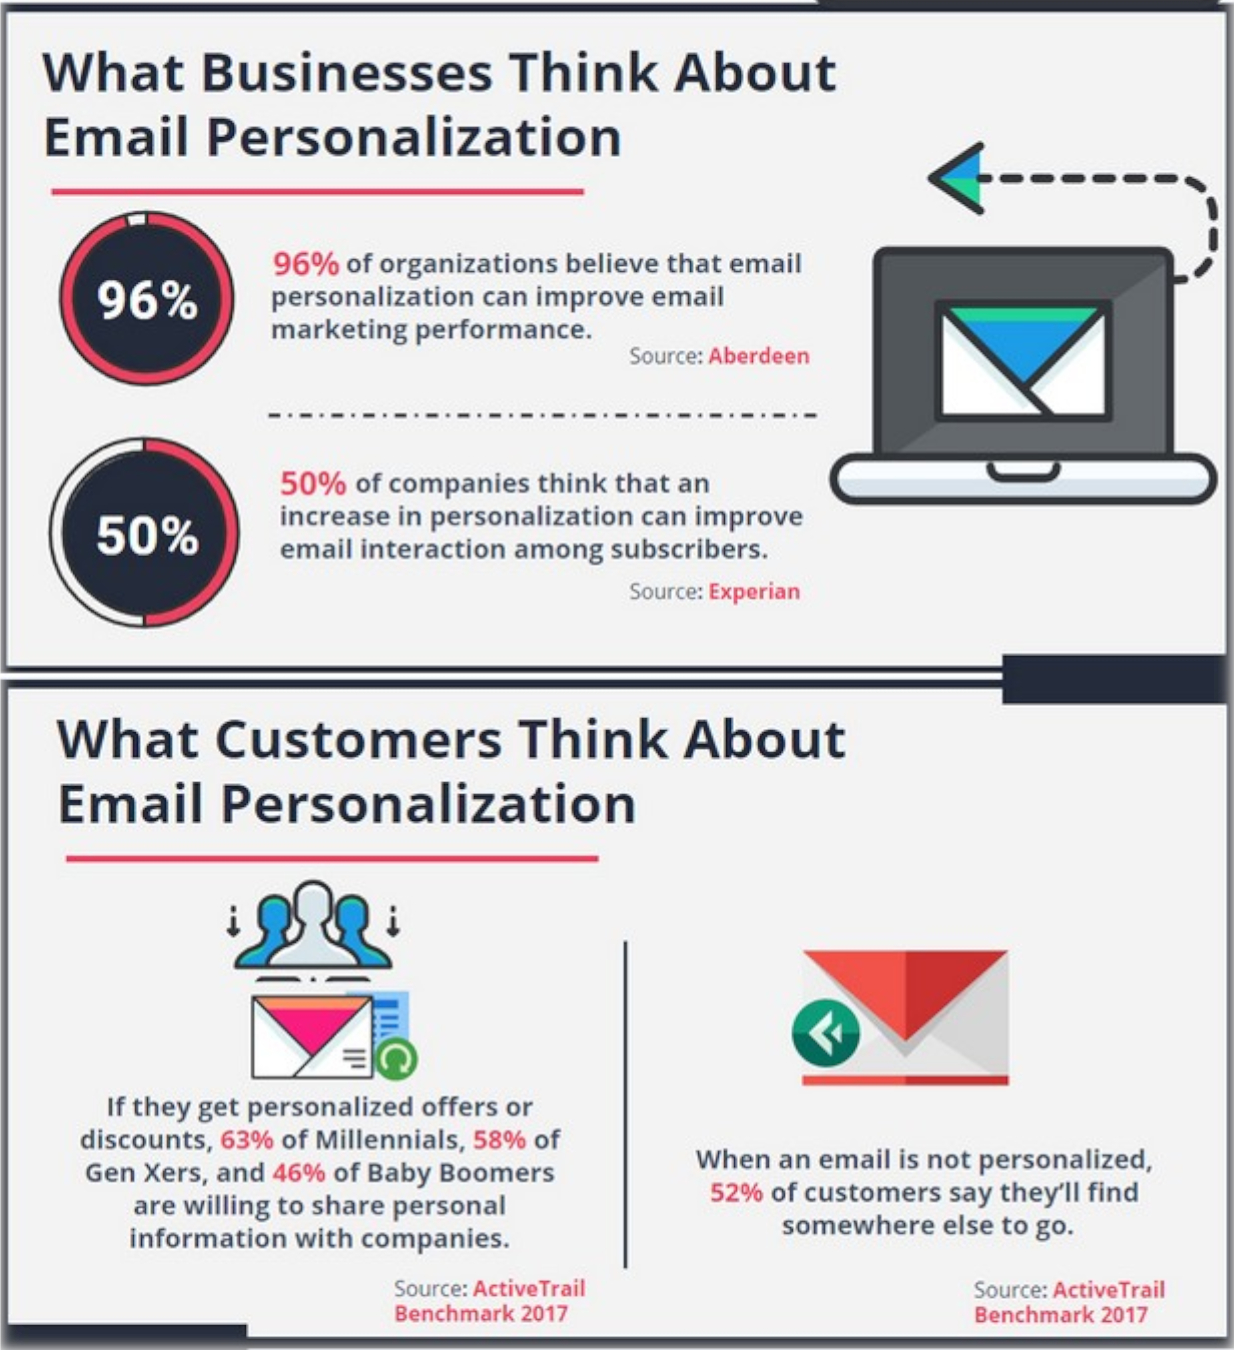 Email personalization leads to higher open and click rates for retail businesses.